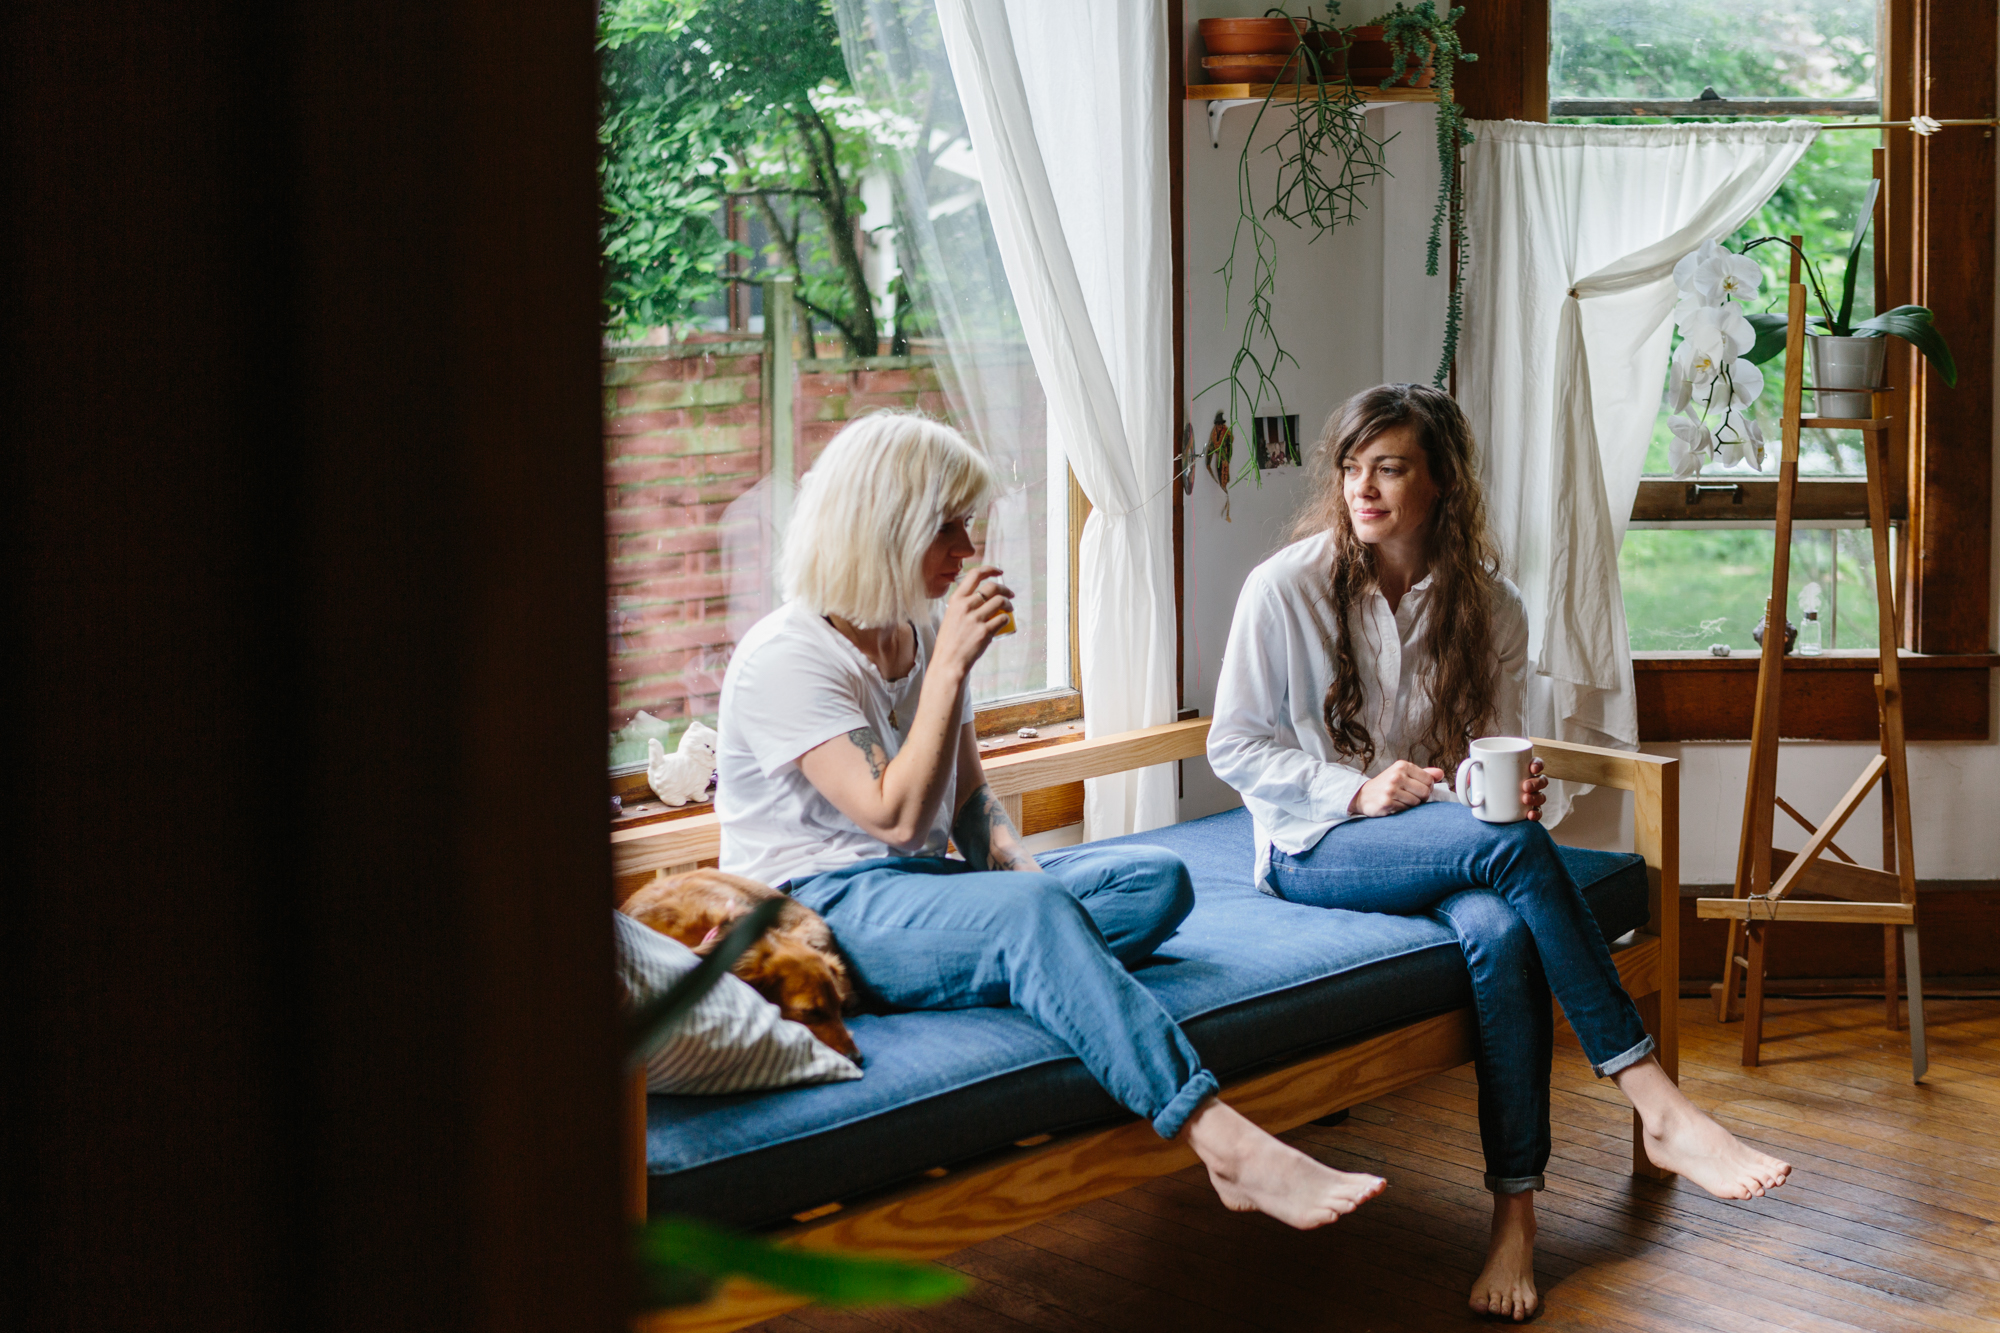 An editoral portrait of Ivy Siosi and Audio Culver of Siosi Design in their home in Bloomington, Indiana for Lonny Mag.